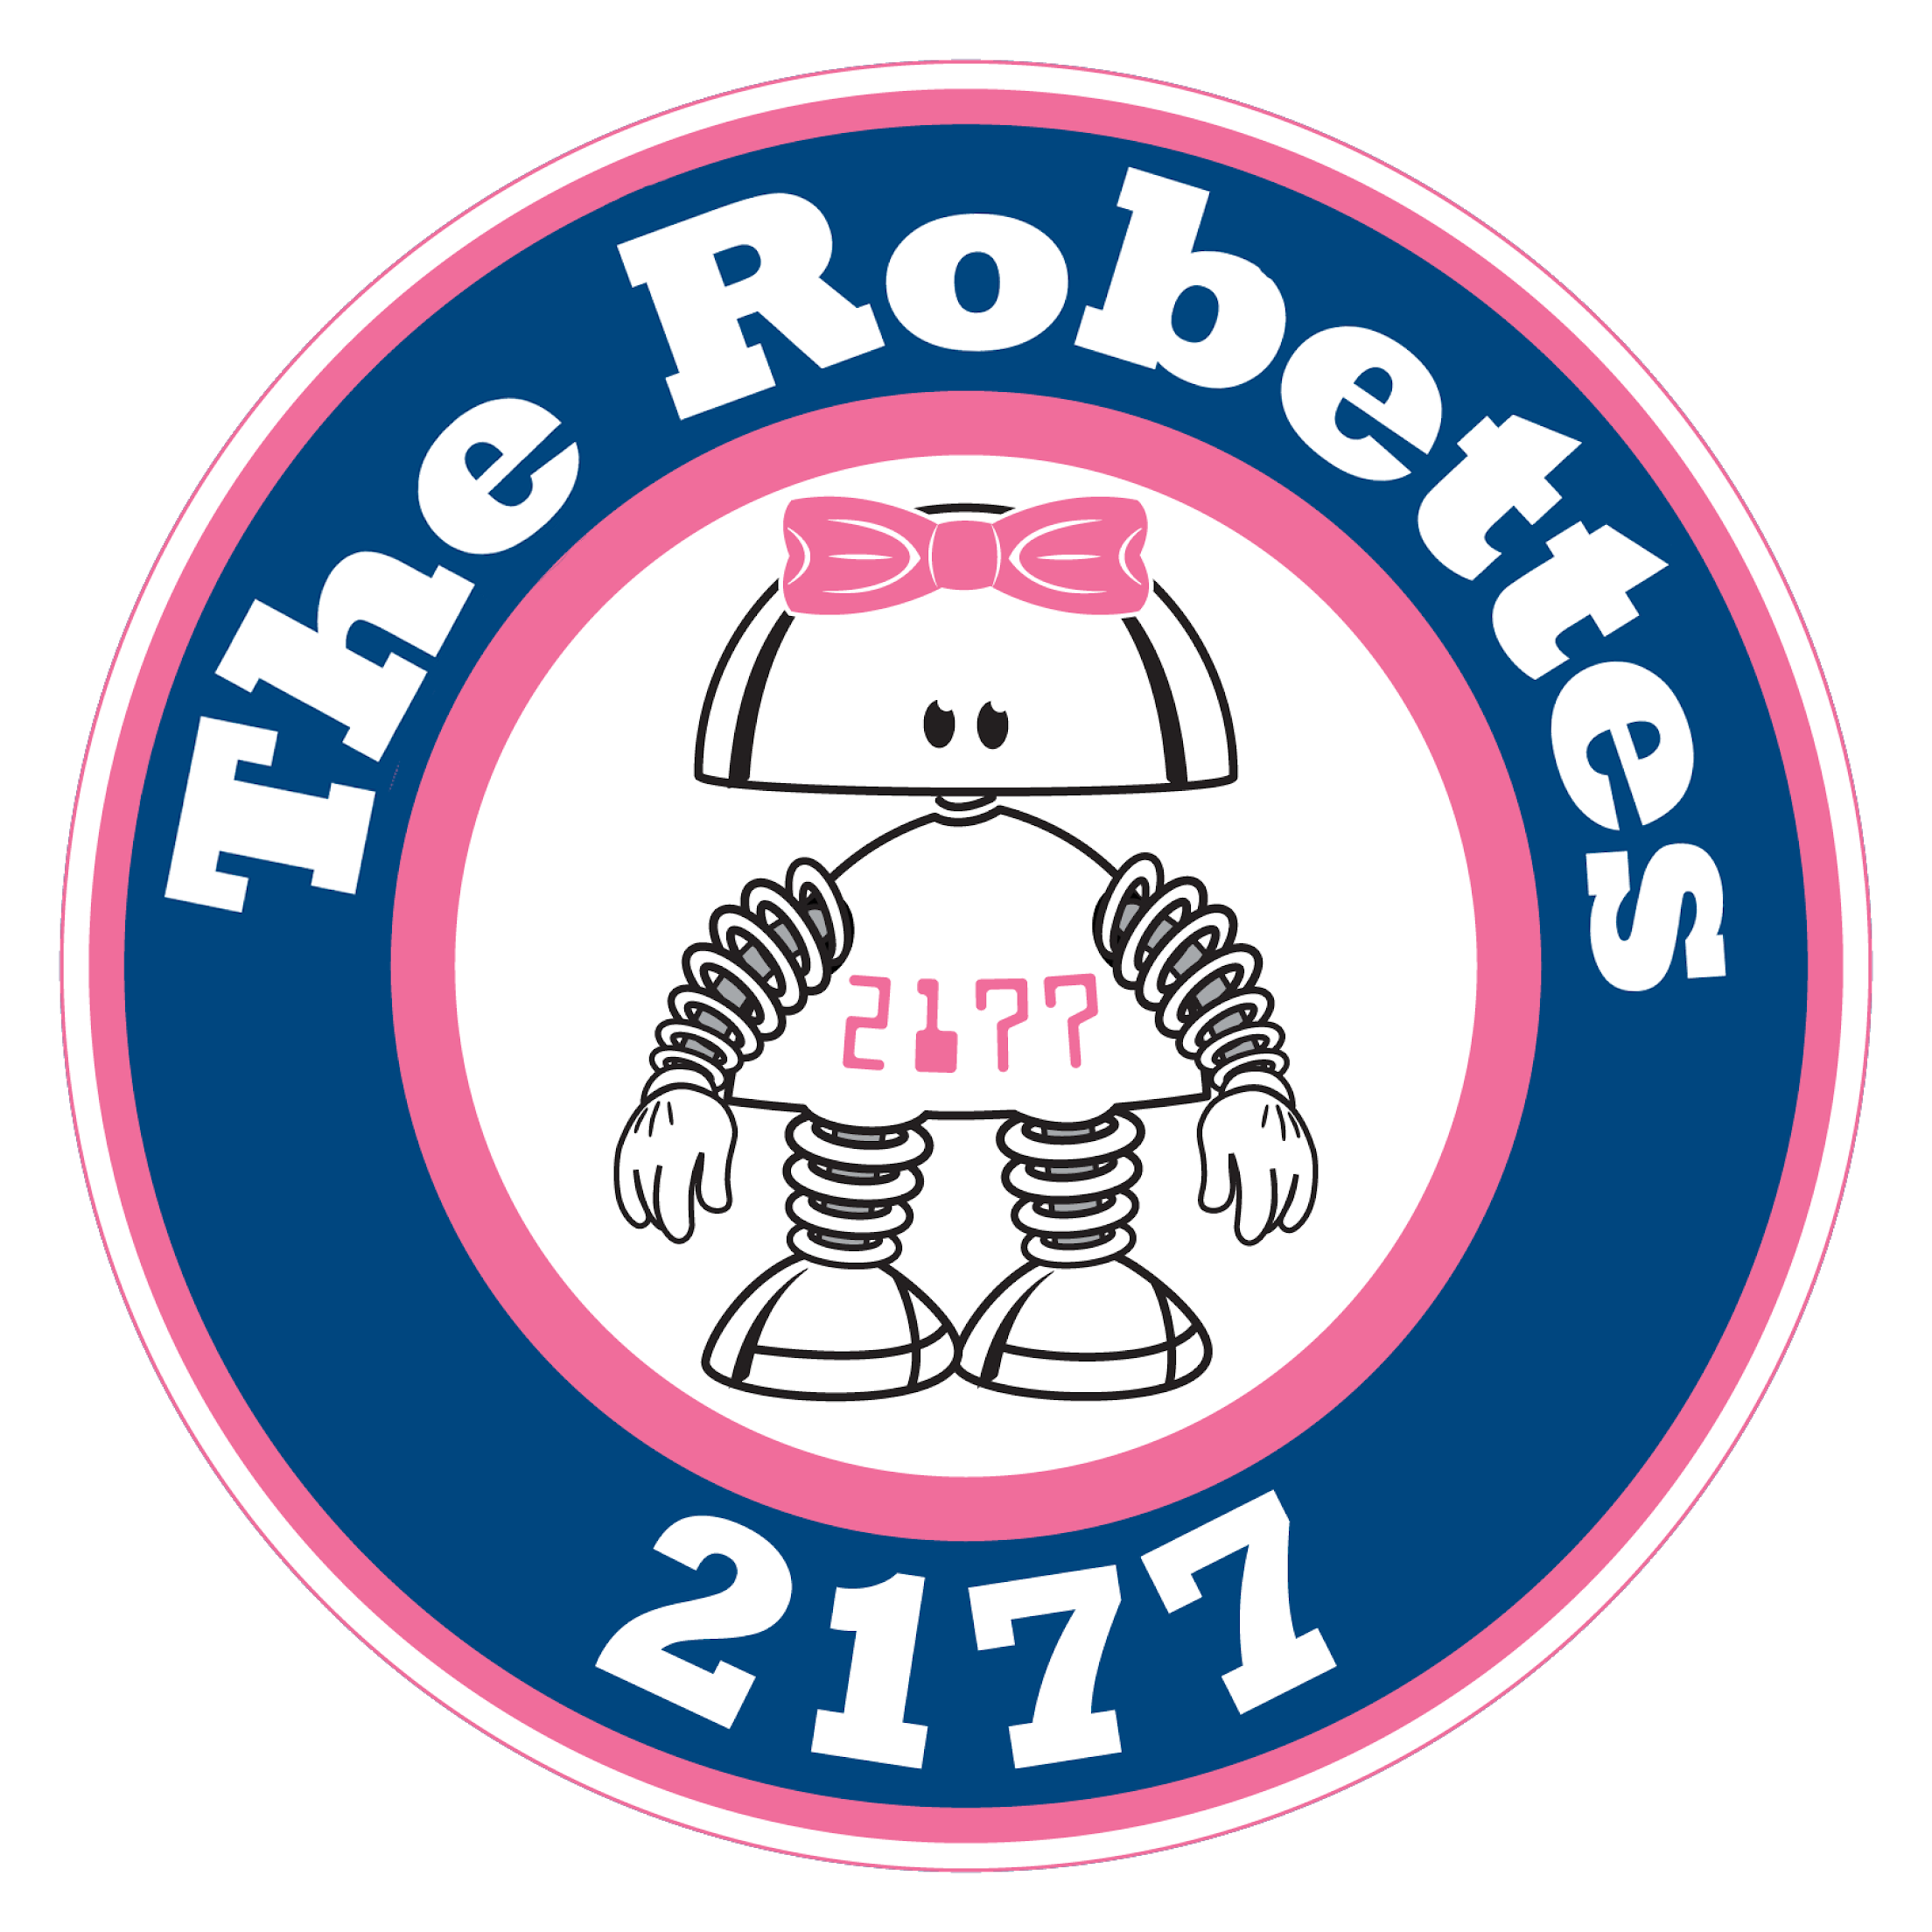 The Robettes